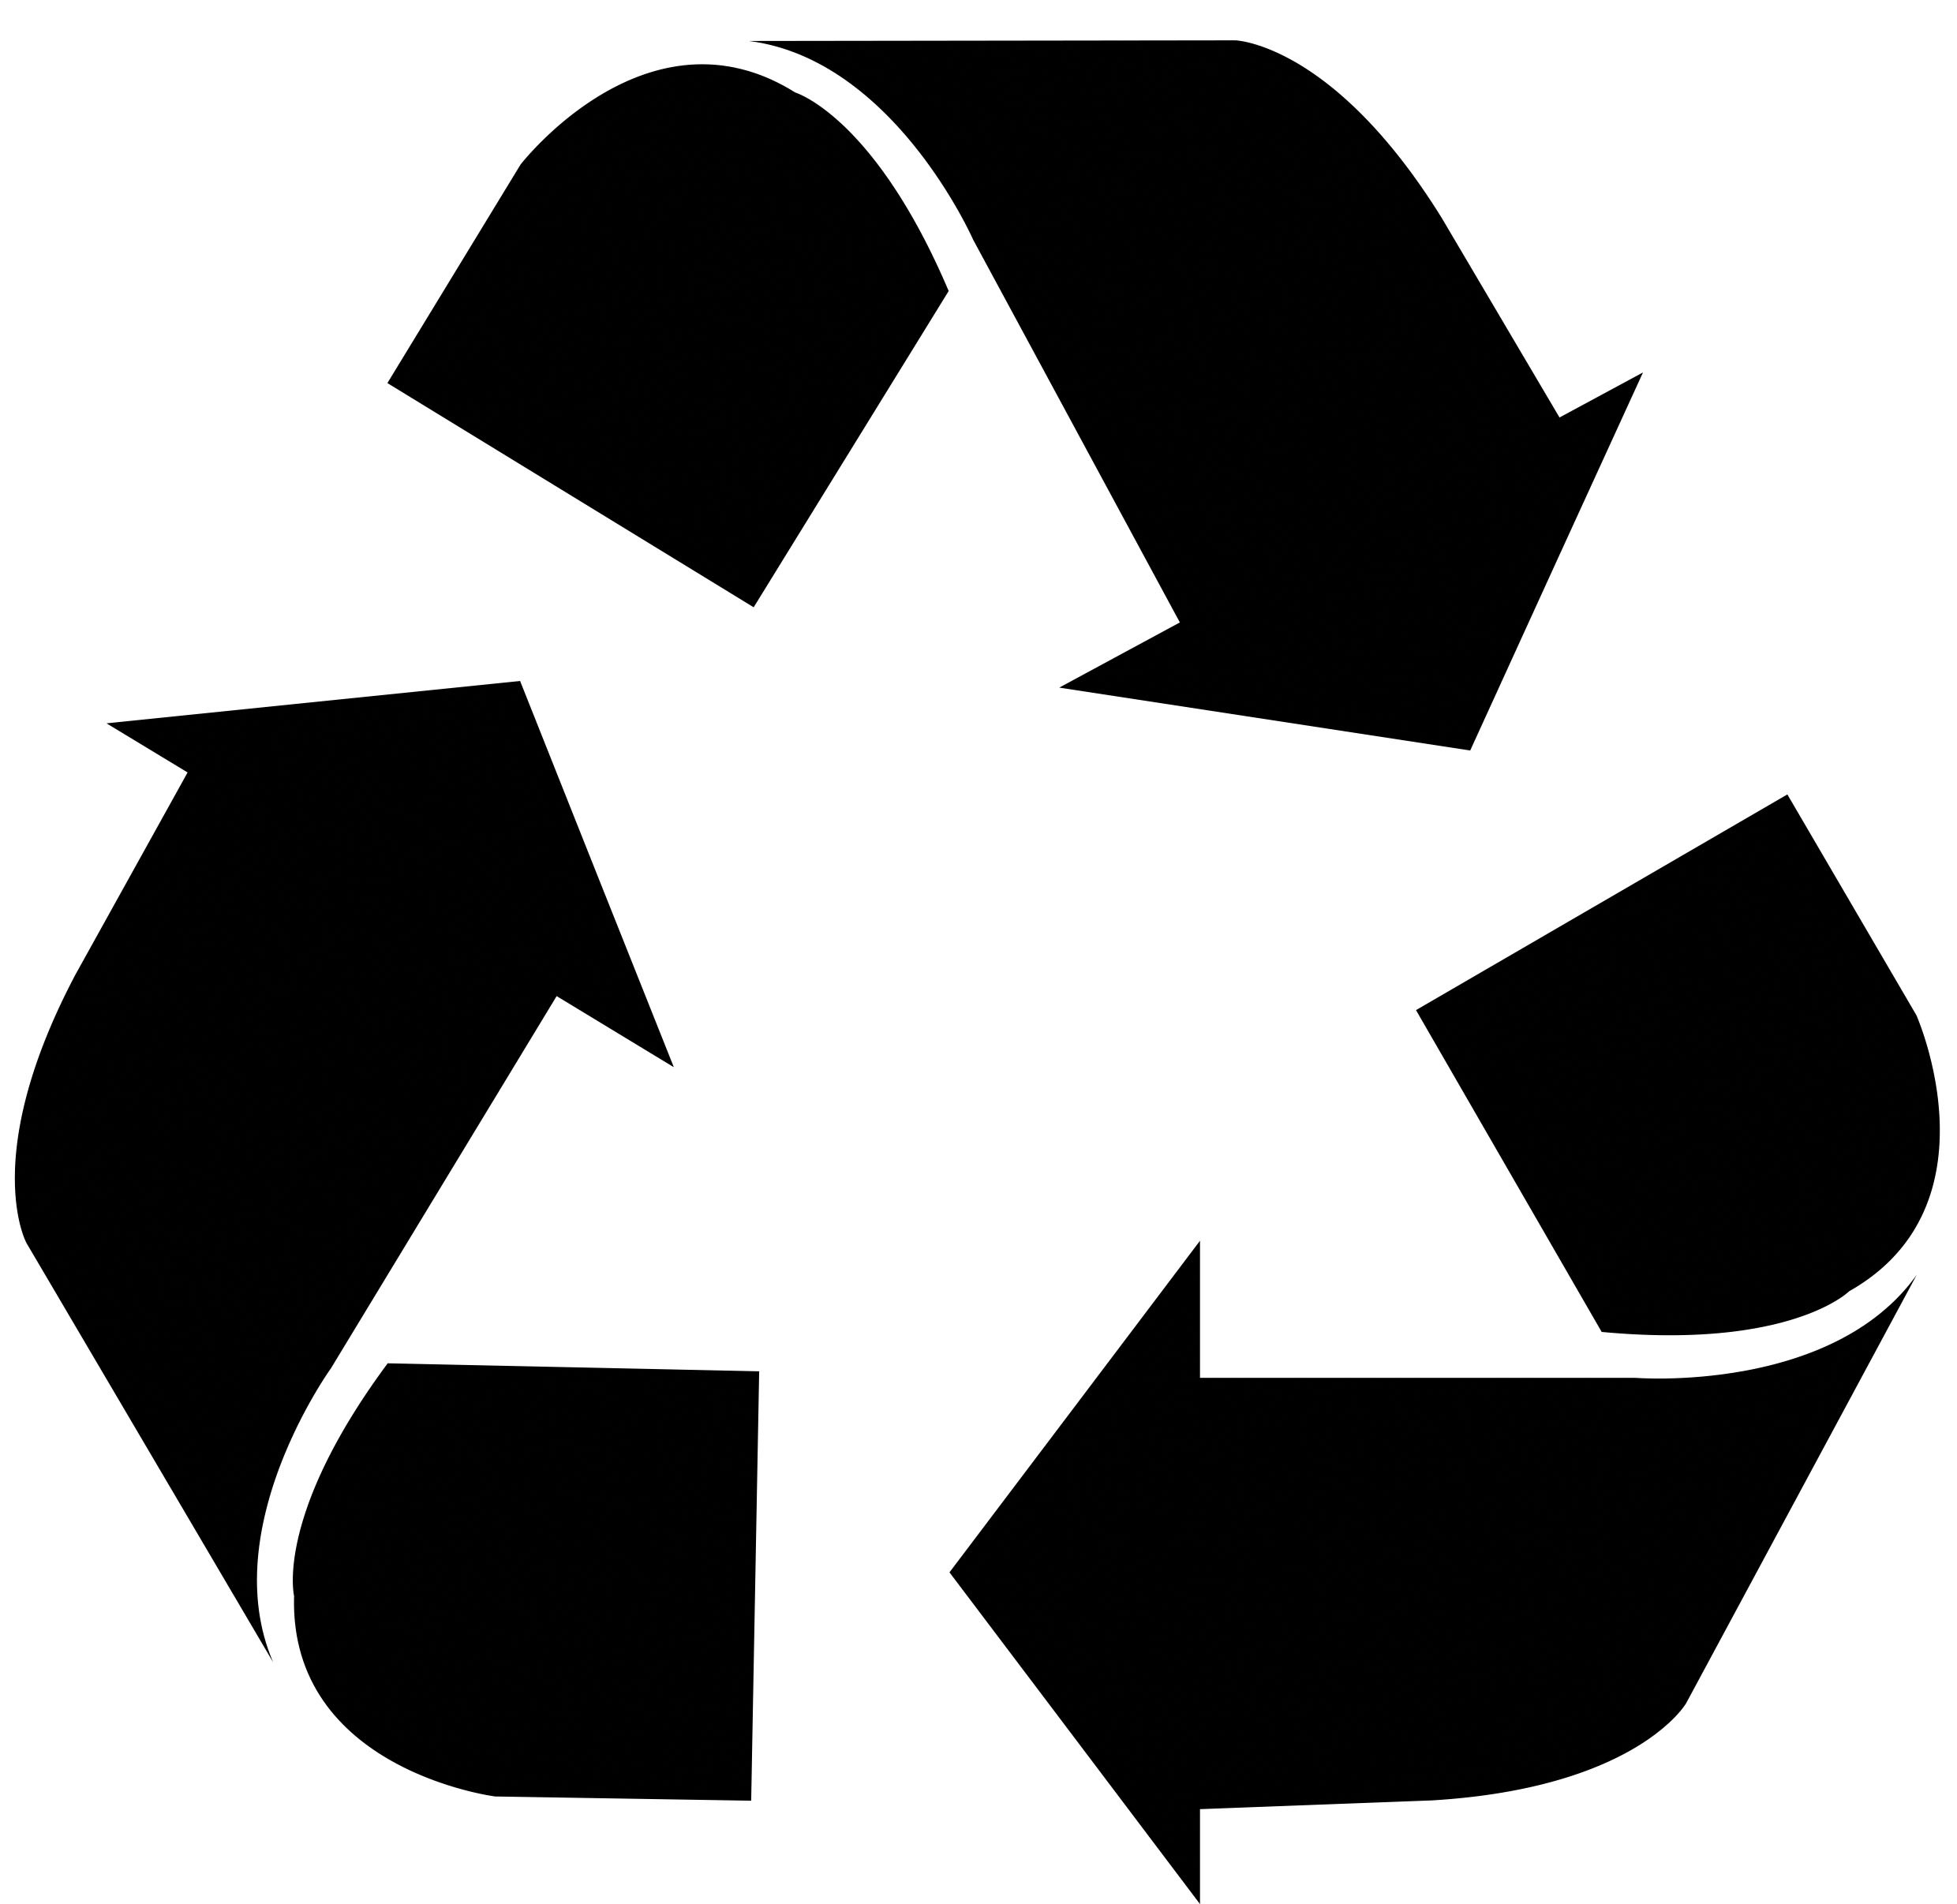 Free Recycling Sign, Download Free Clip Art, Free Clip Art.